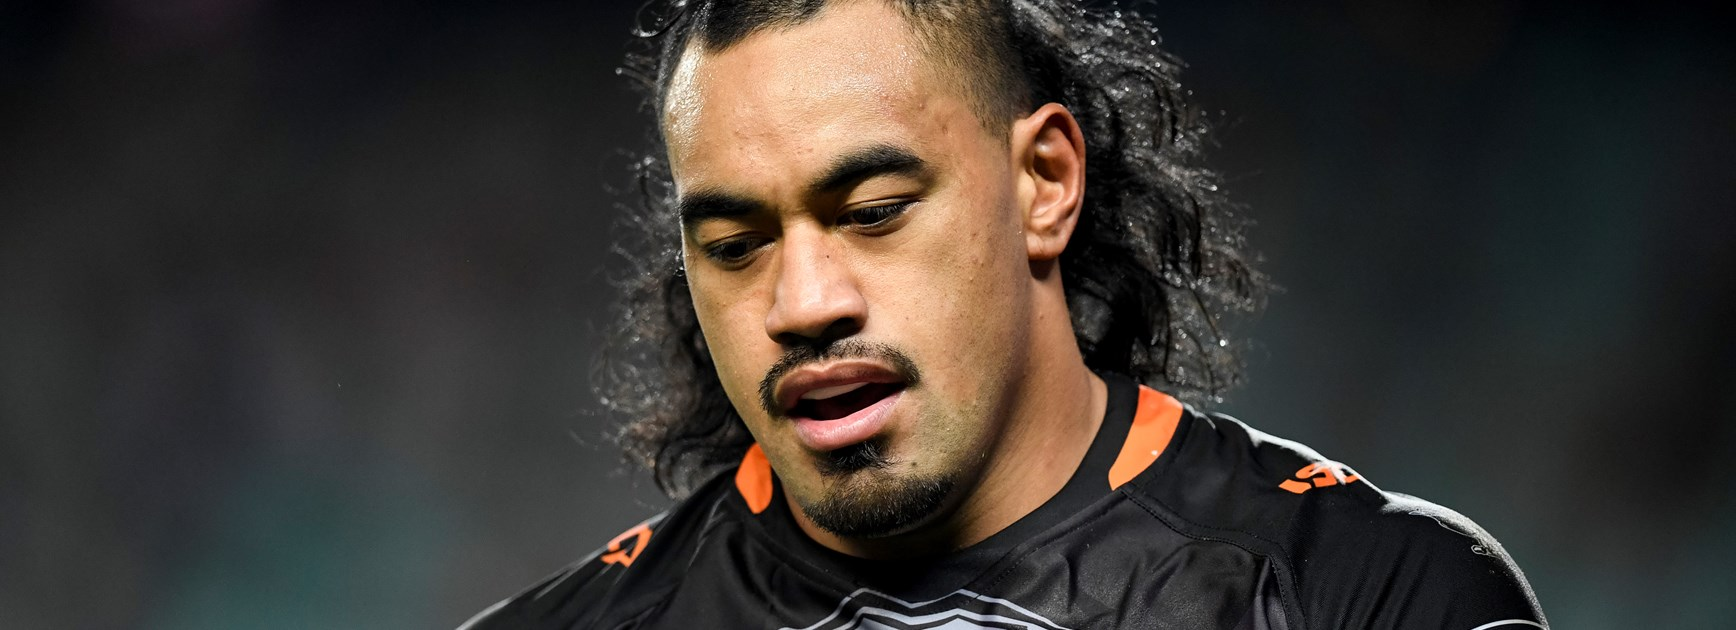 Wests Tigers Results: Round 13